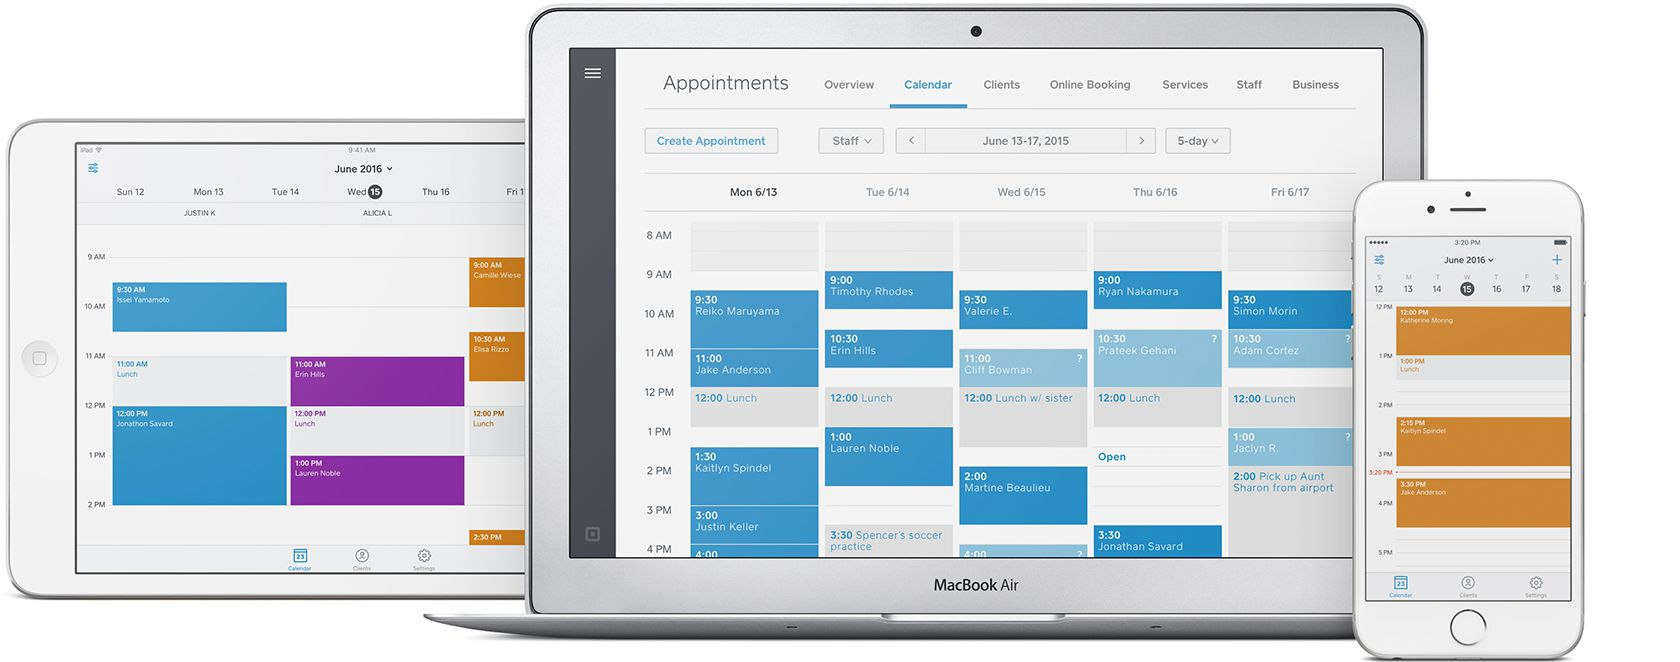 Image of an iPad, laptop, and mobile phone with Square Appointments calendar interface